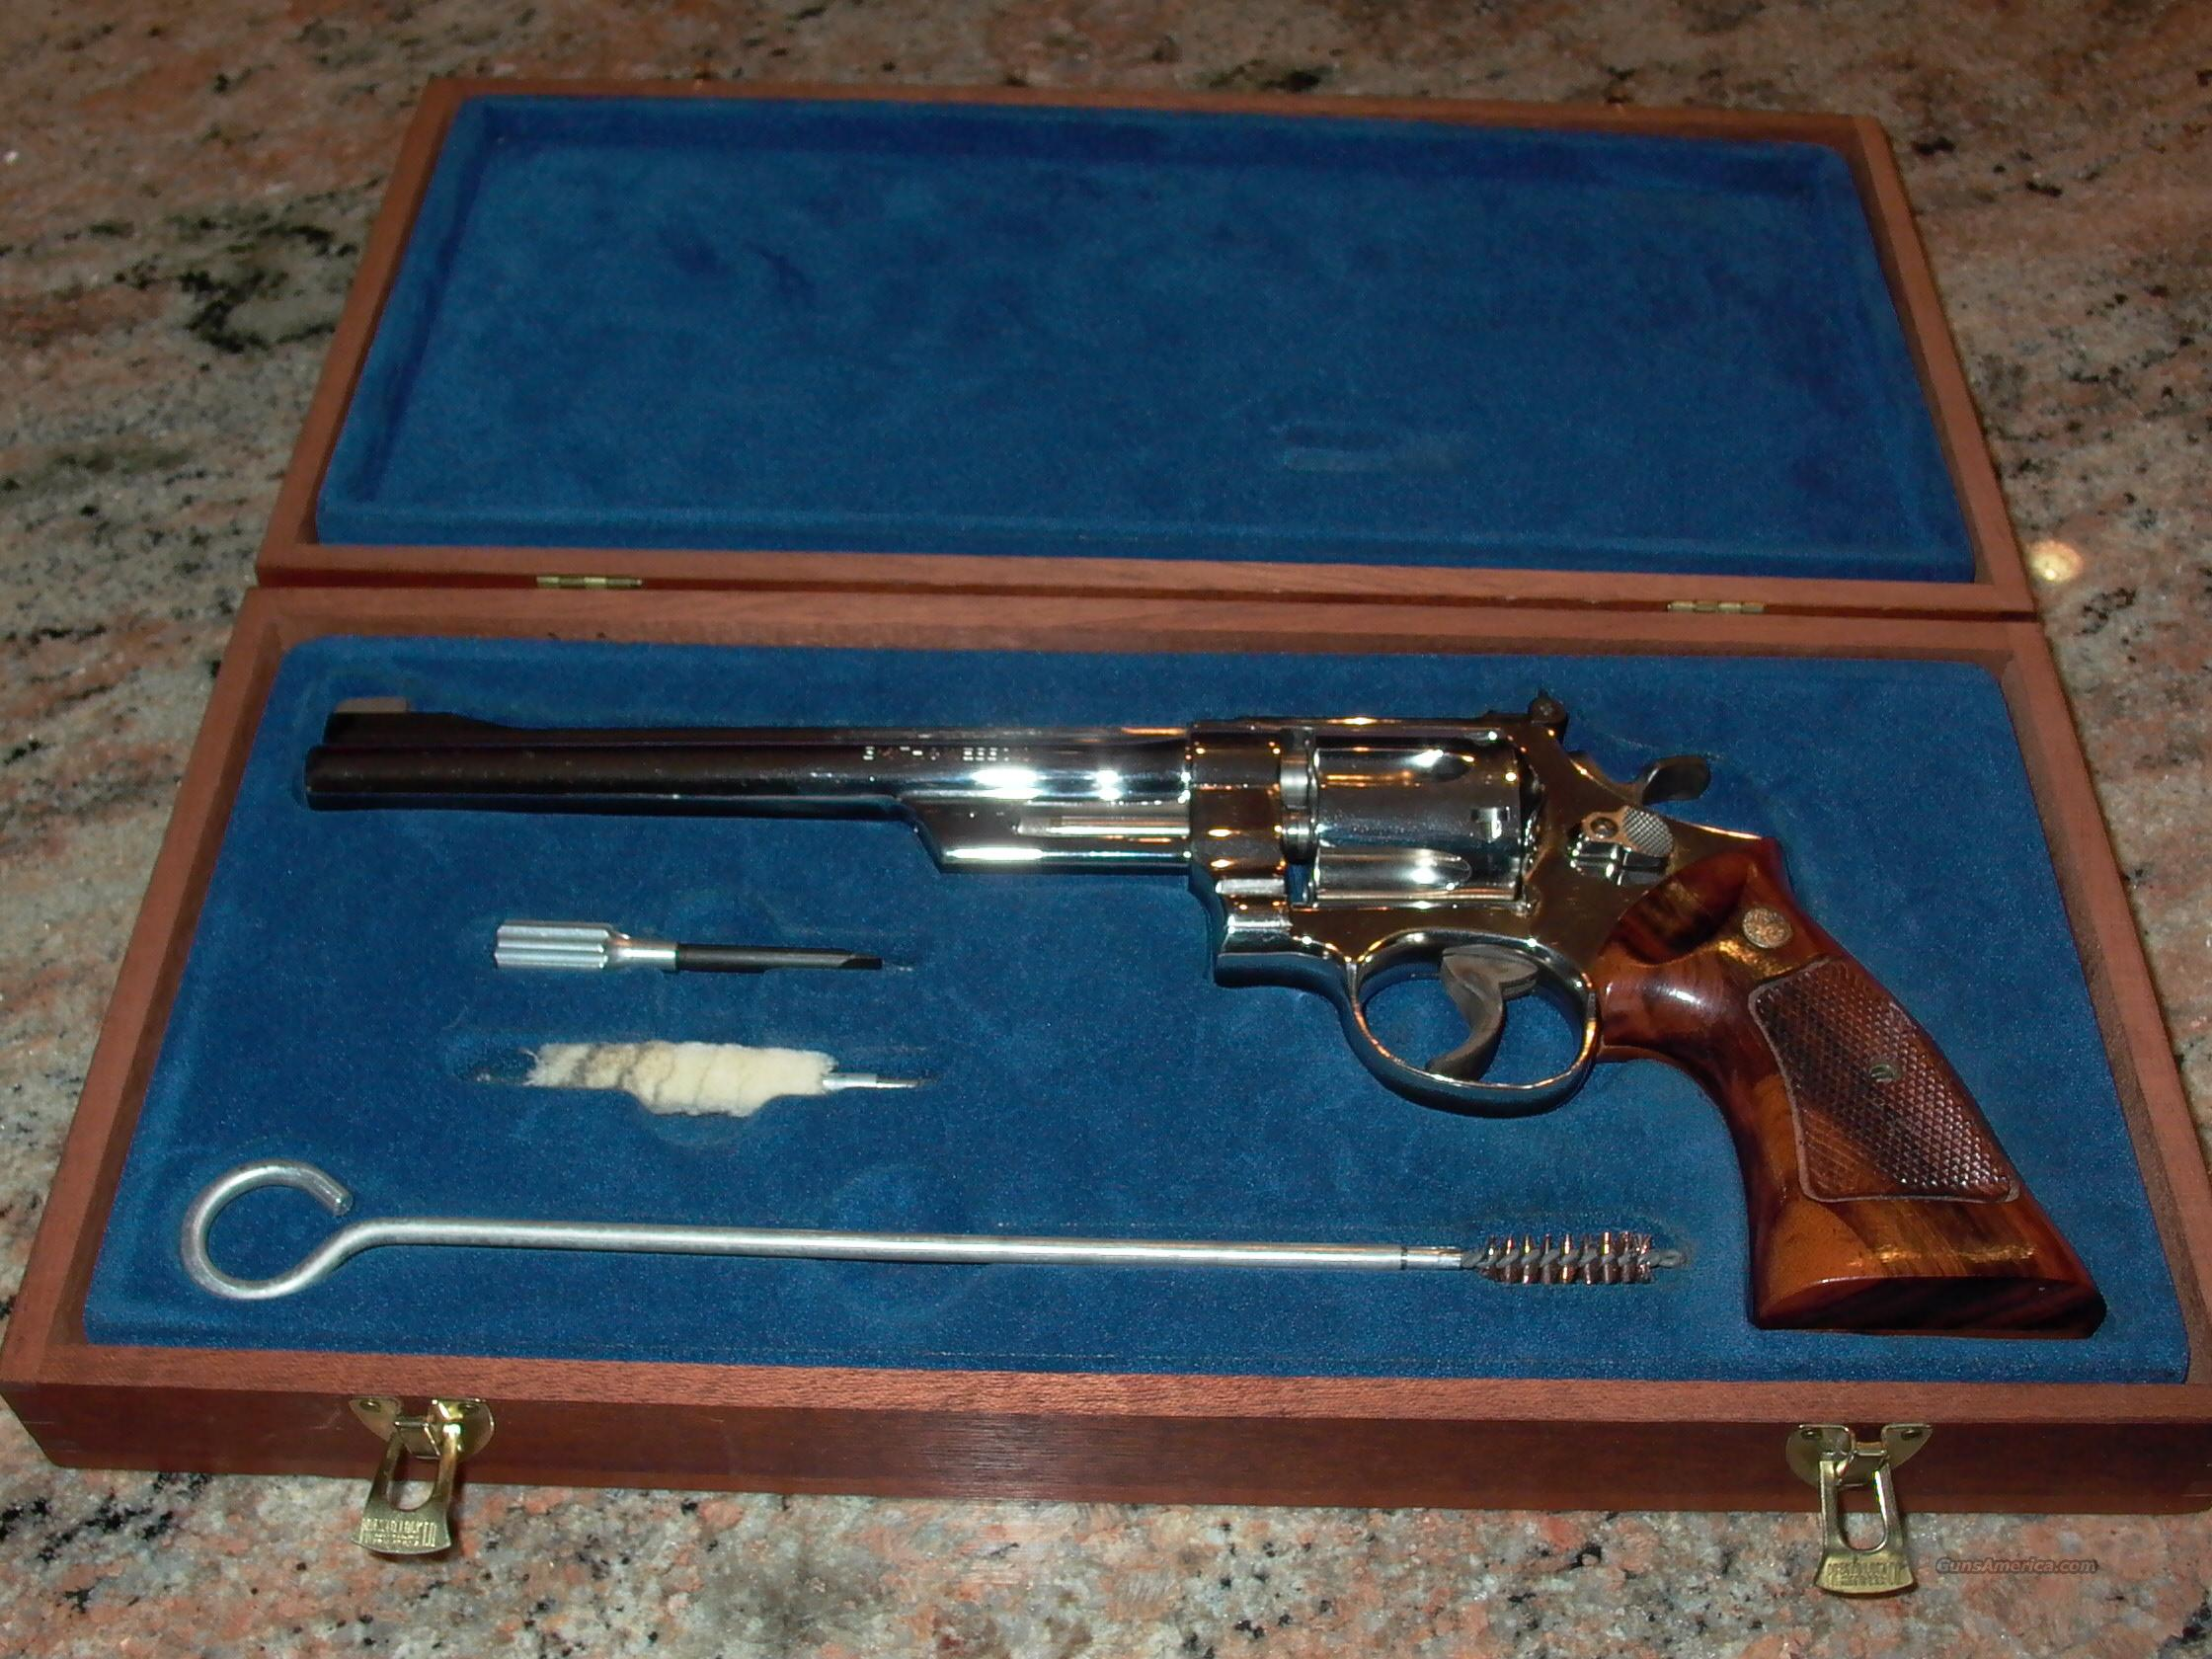 27-2 NICKLE FINISH 357 PRESENTATION CASE  Guns > Pistols > Smith & Wesson Revolvers > Full Frame Revolver